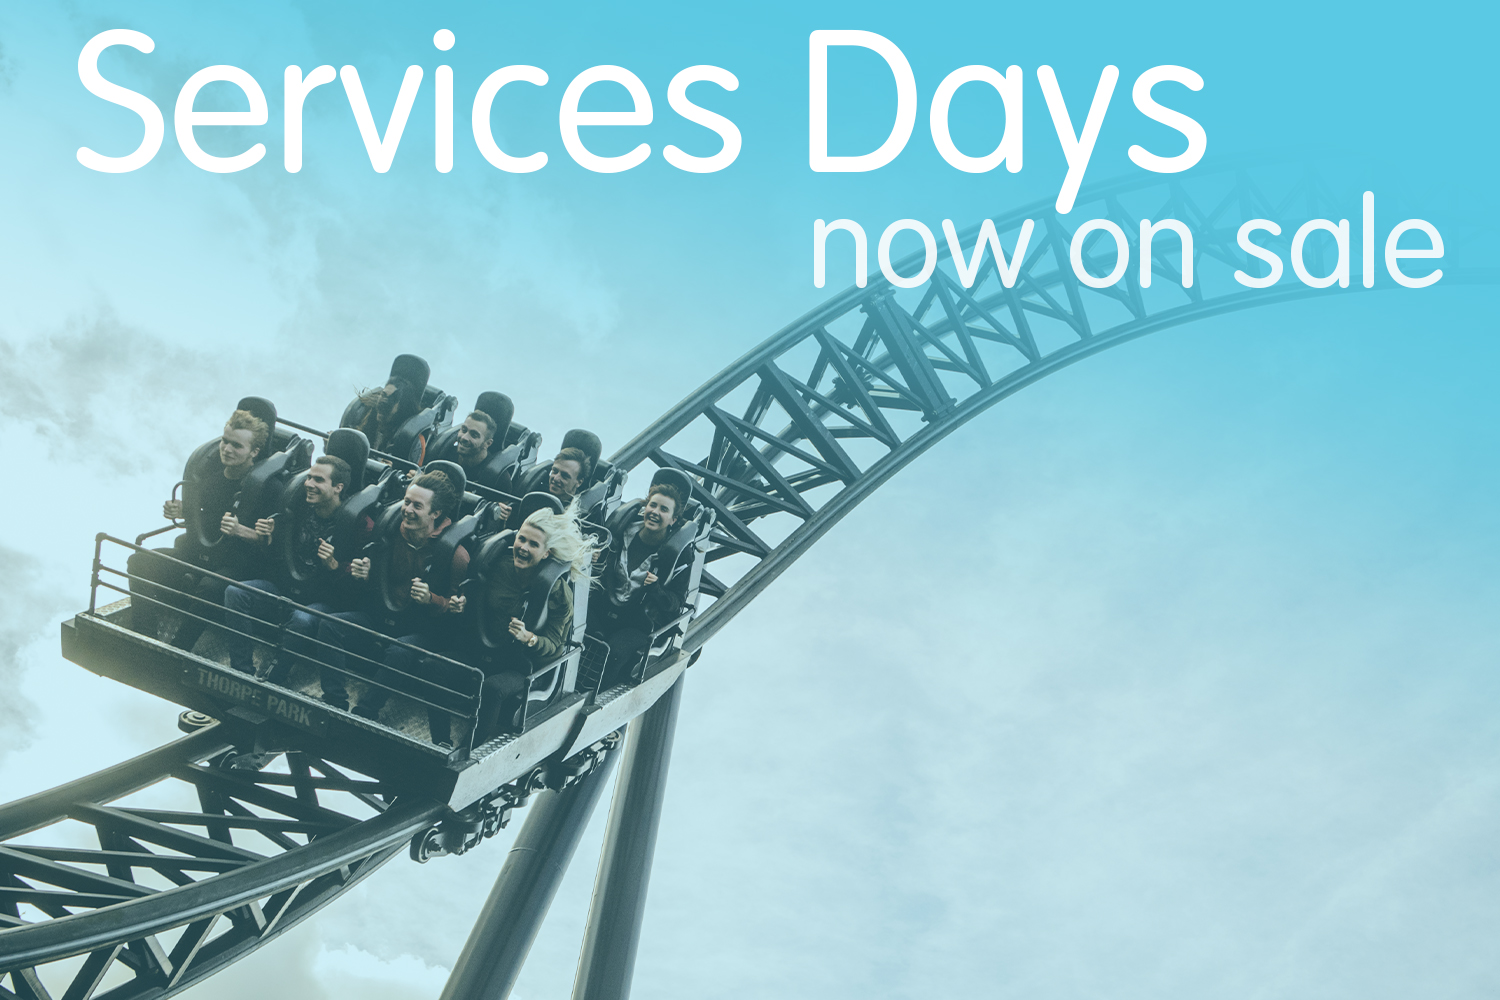 Services Days 2021 - now on sale!>